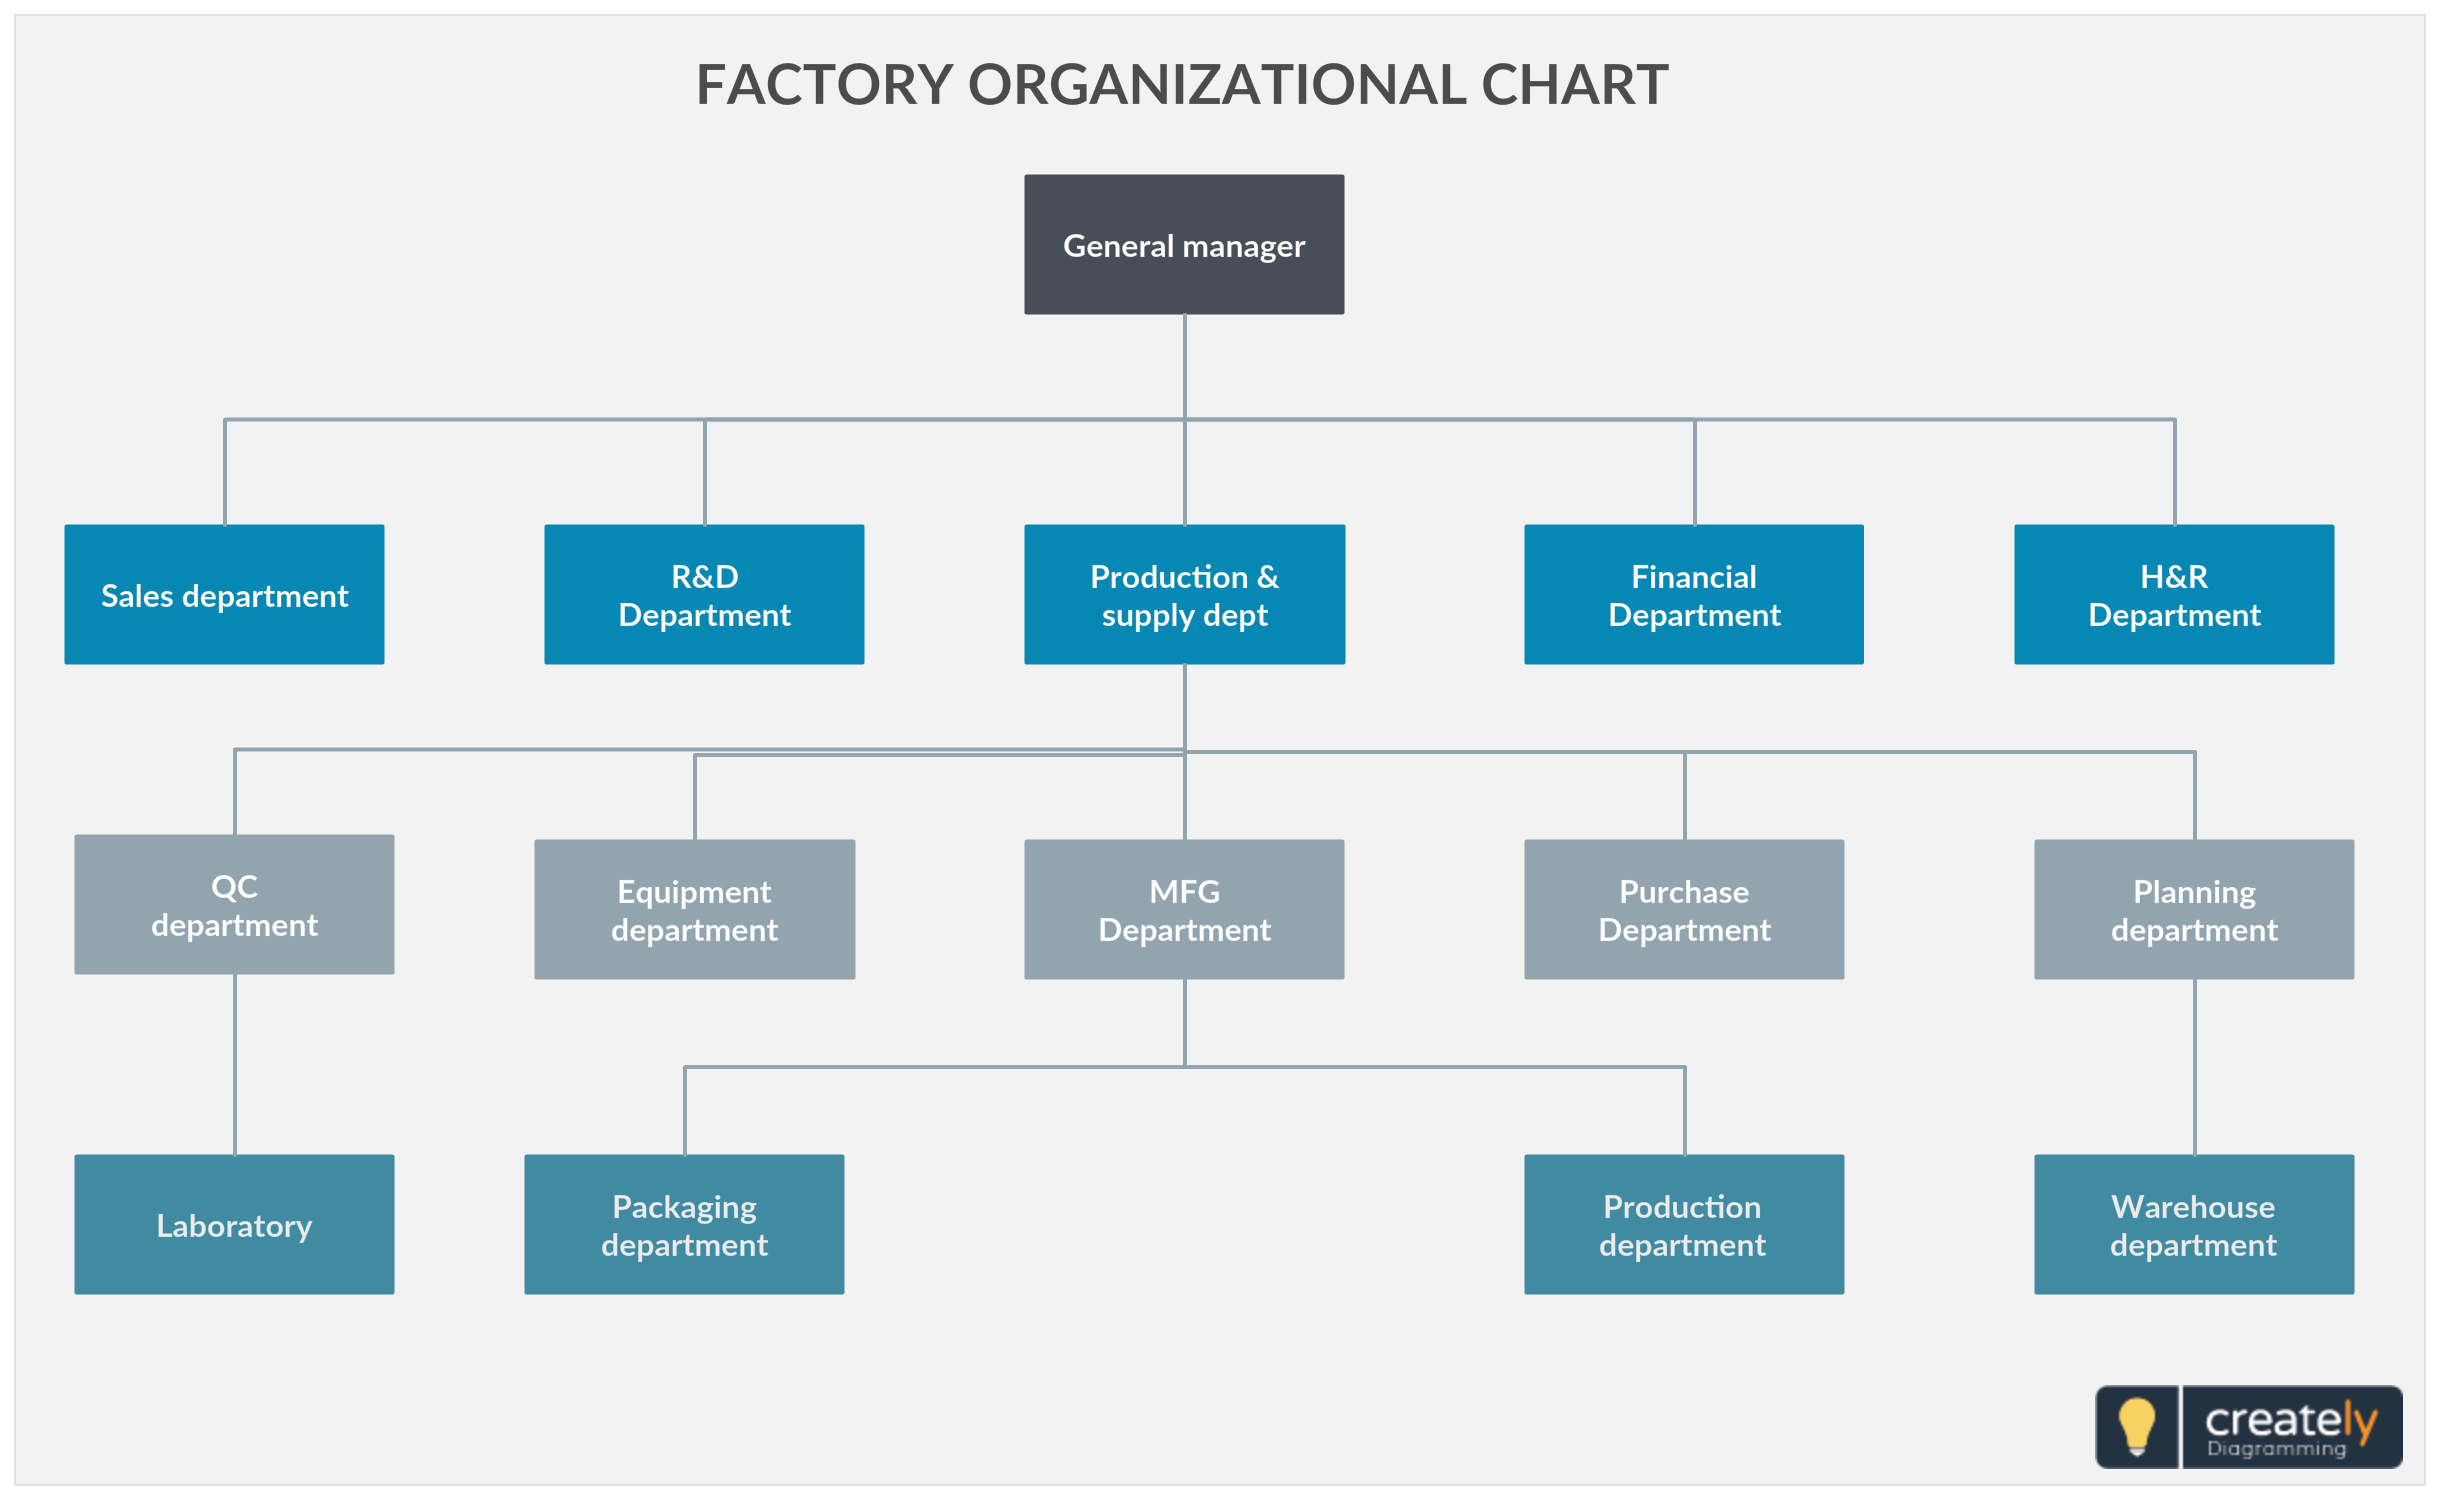 Factory Organizational Chart An Organization Structure Of A Factory Which Shows The Hierarchical Structure Organizational Chart Organization Chart Org Chart